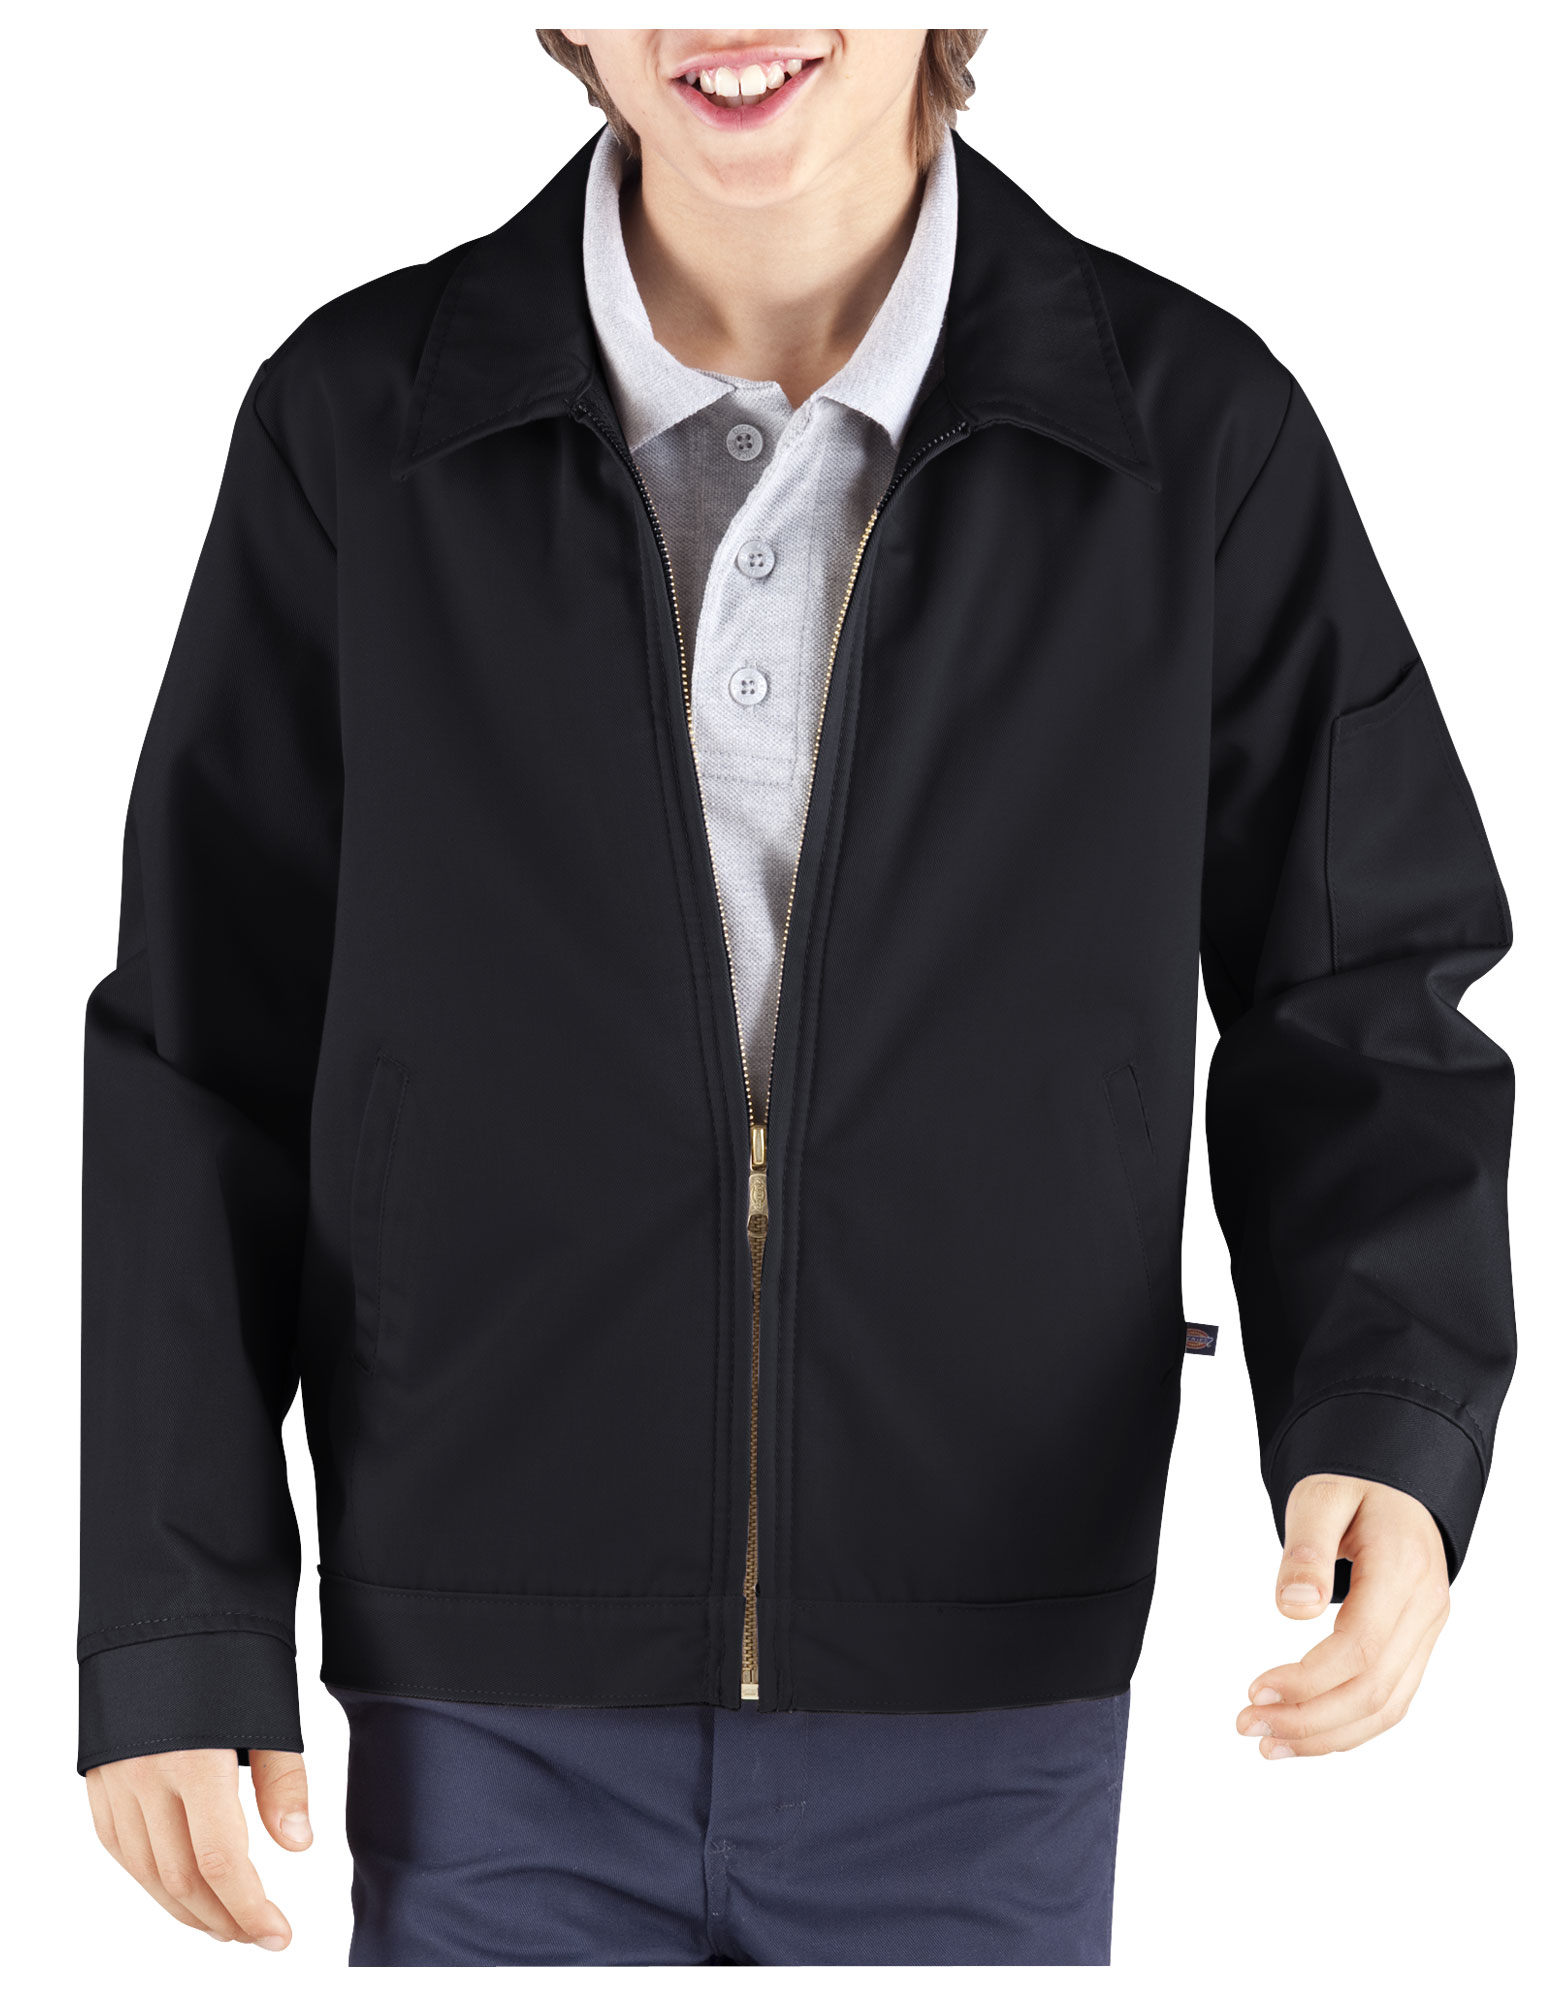 Kids' Eisenhower Jacket, 8-20 - Rinsed Black (RBK)